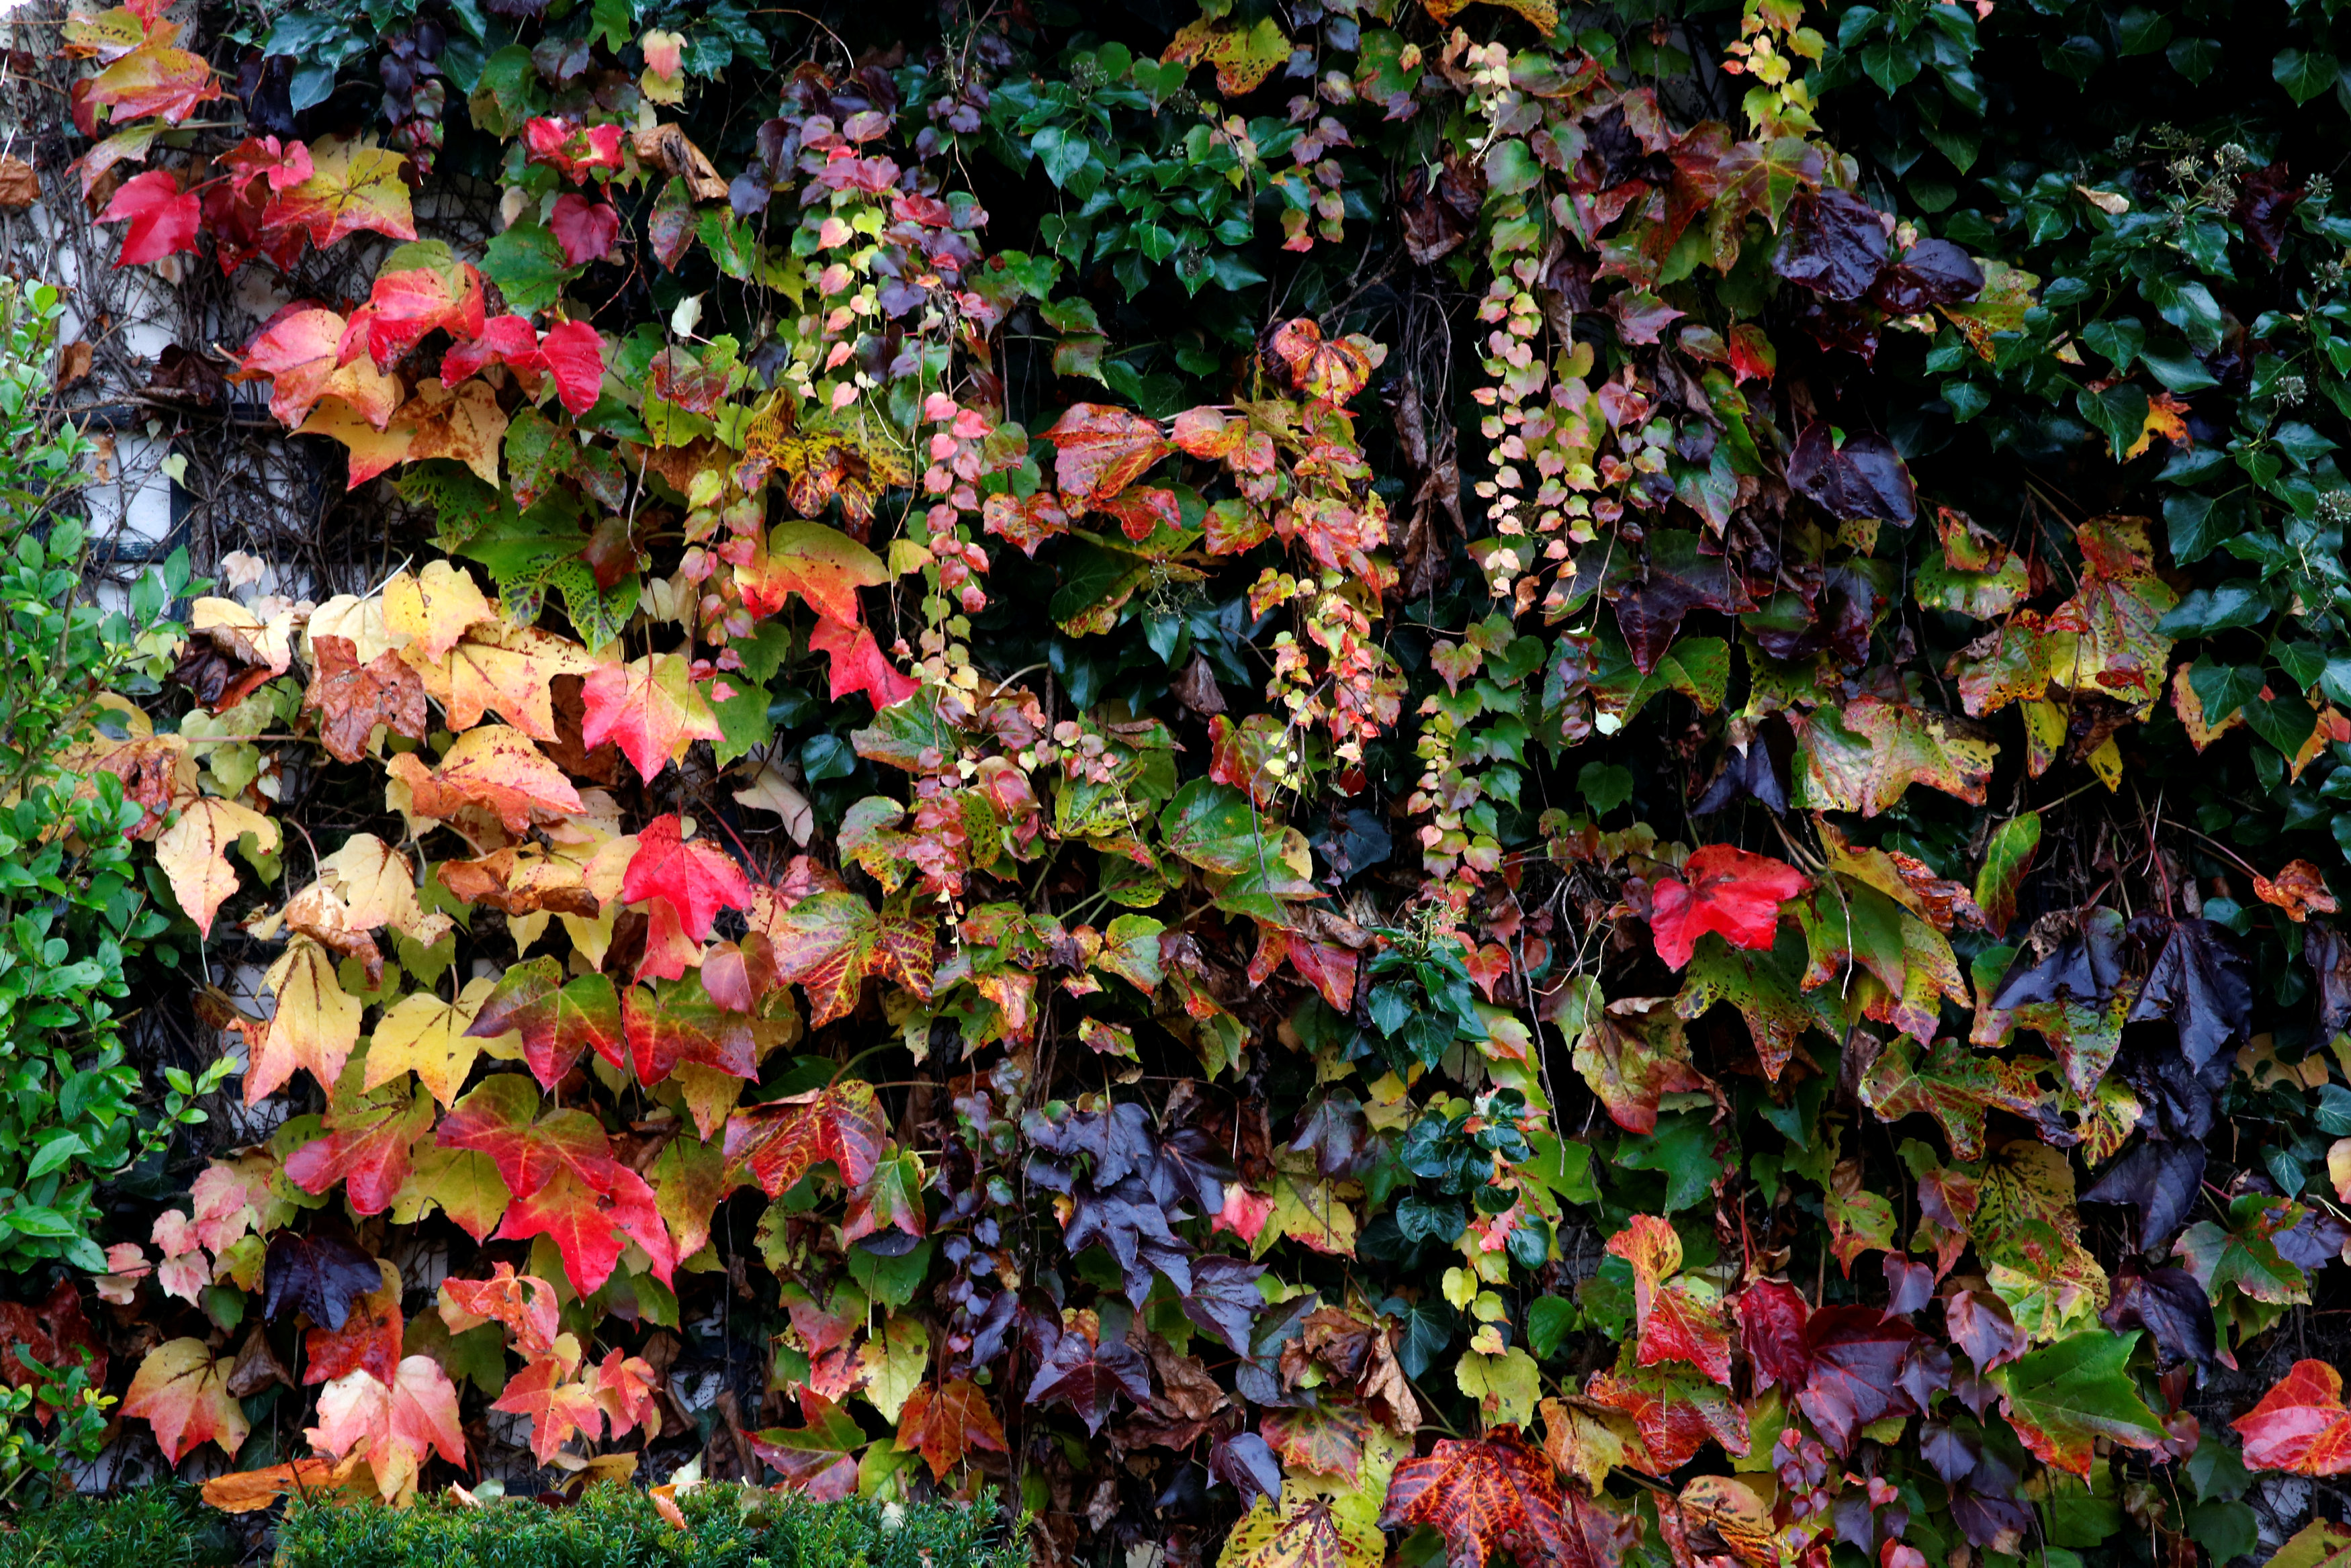 A wall with autumn leaves is pictured in Giverny, France, November 4, 2016. REUTERS/Jacky Naegelen